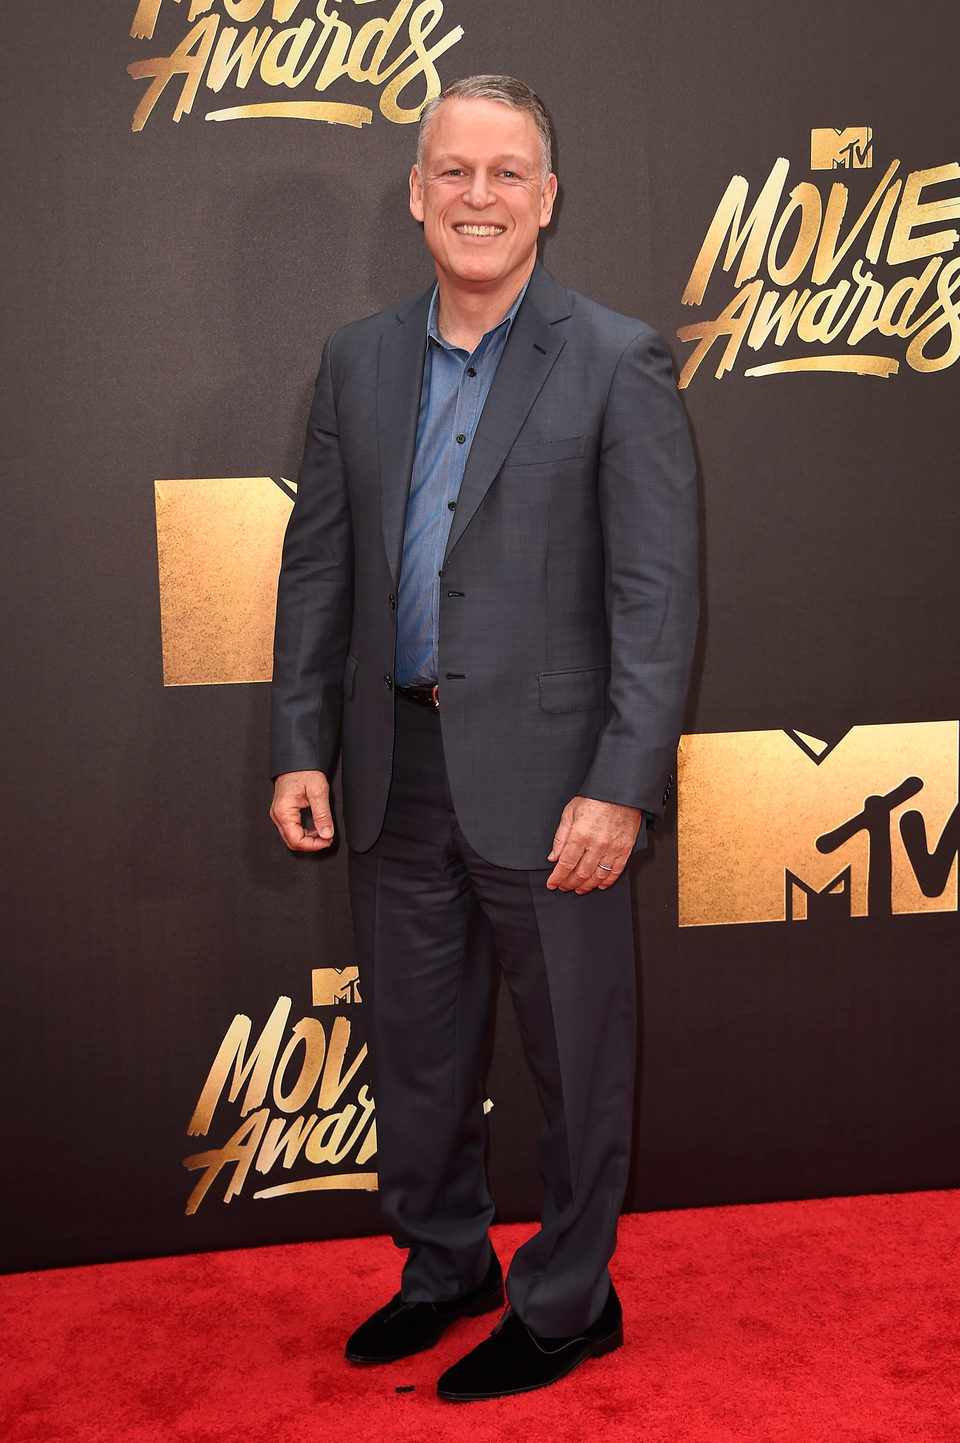 Larry Shuman en la alfombra roja de los MTV Movie Awards 2016